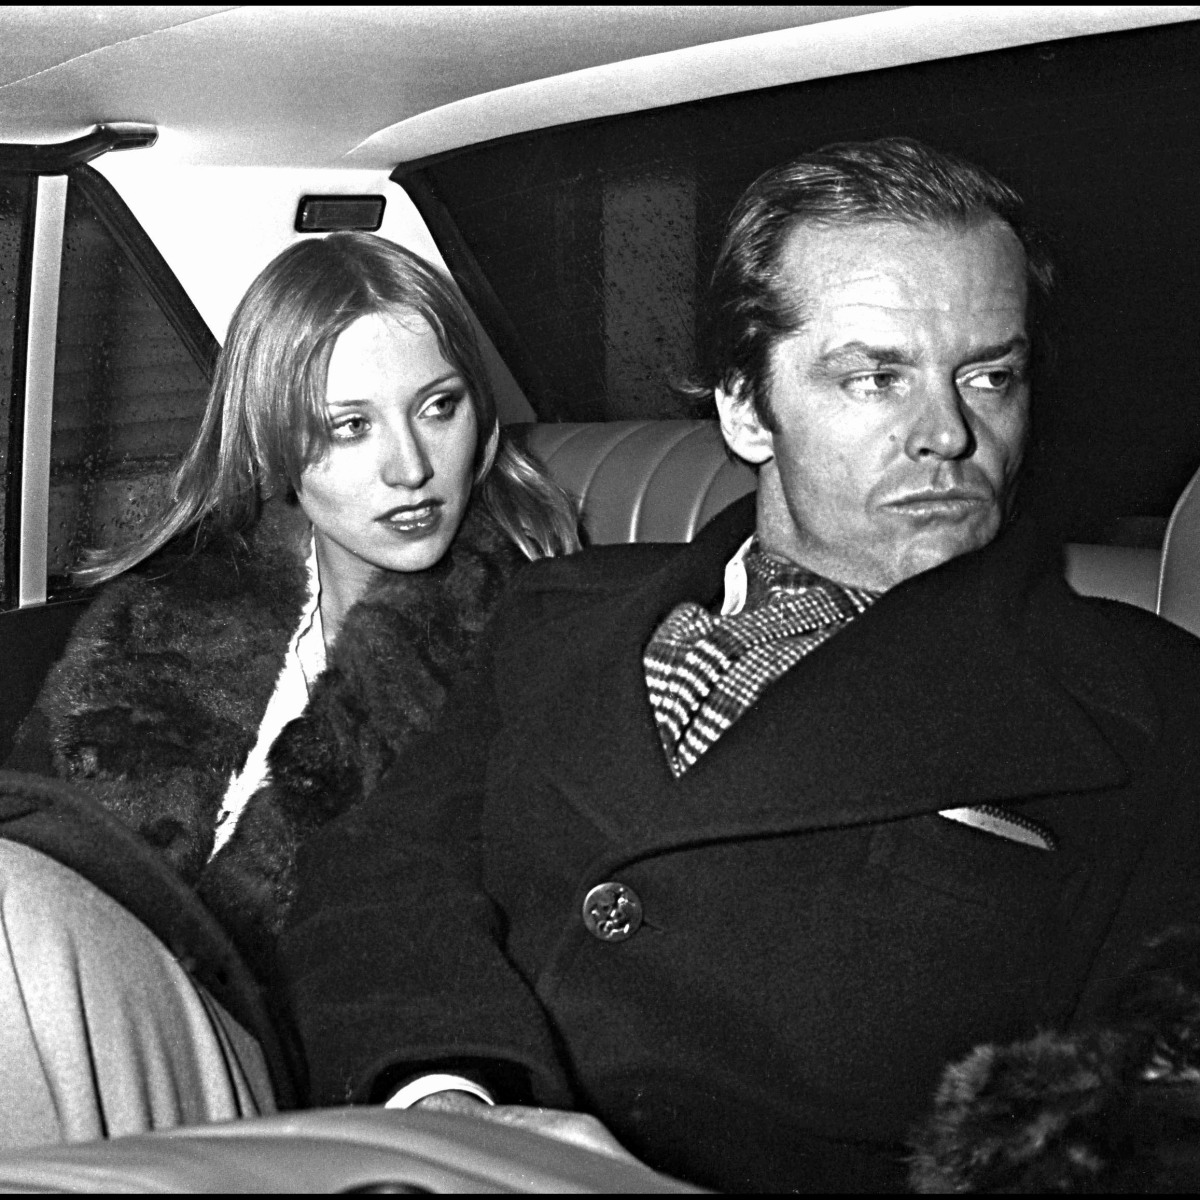 Jack Nicholson S 5 Children Meet The Oscar Winner S Family View complete tapology profile, bio, rankings, photos, news and record. jack nicholson s 5 children meet the oscar winner s family